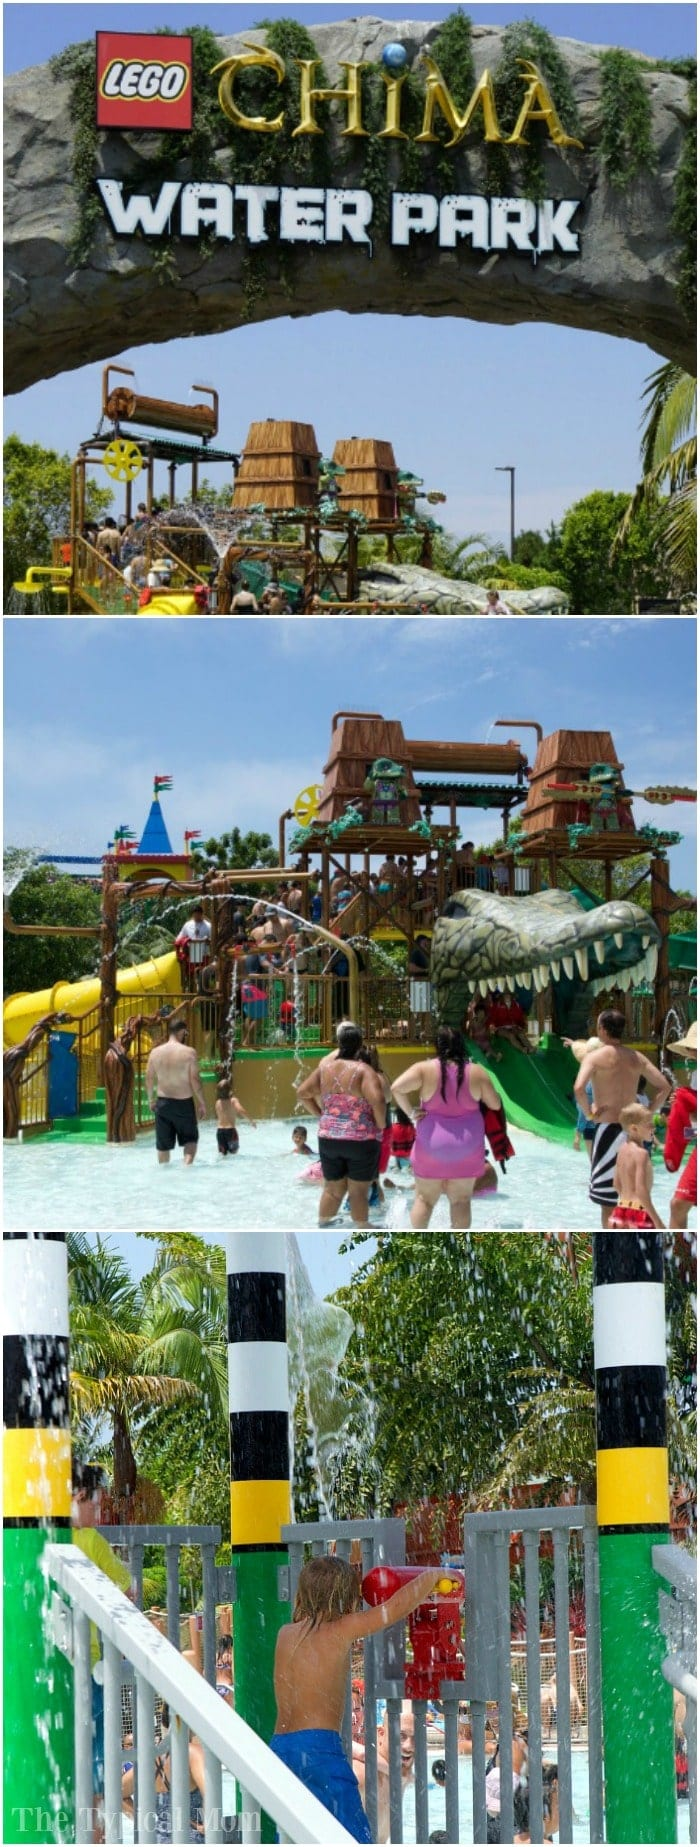 Legoland CHIMA Waterpark is just a small part of this family friendly water play area in Carlsbad. See what to expect when you arrive and what's coming!